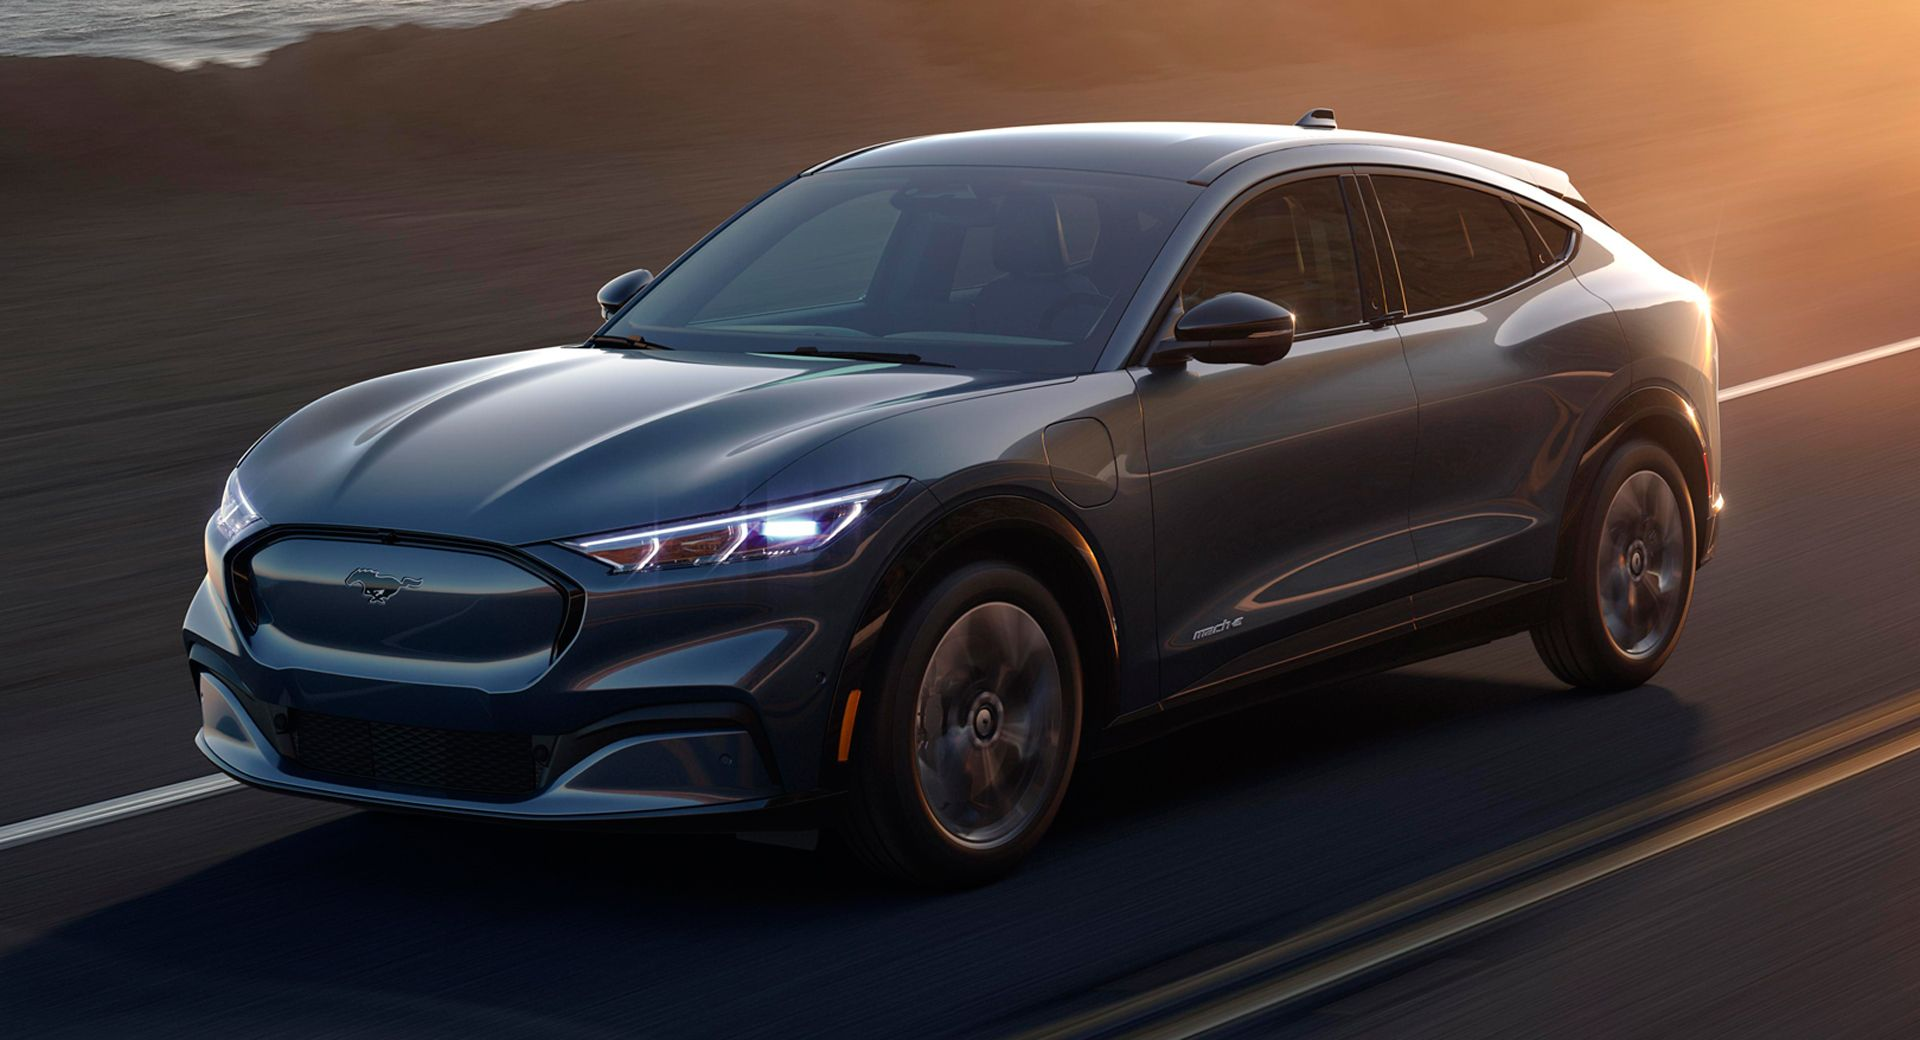 Ford Technicians To Be Trained About Mustang Mach E Through Vr Bosch Ford Fordmustang Fordmustangmach E Tech Cars Carsofinstagram Carporn Carlifesty In 2020 Car